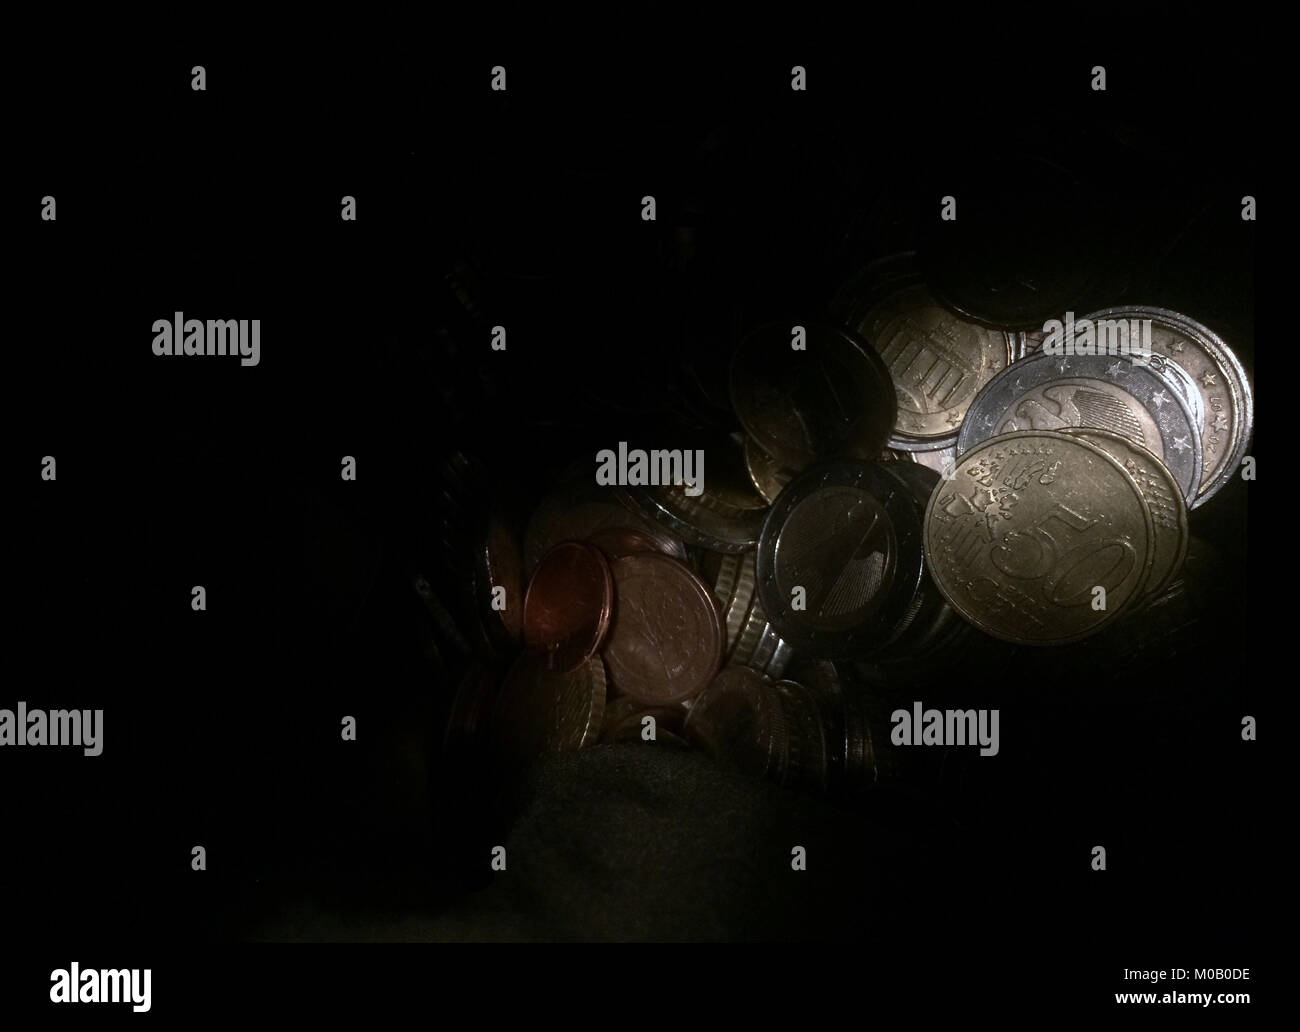 Darkness and Euro crisis - Stock Image